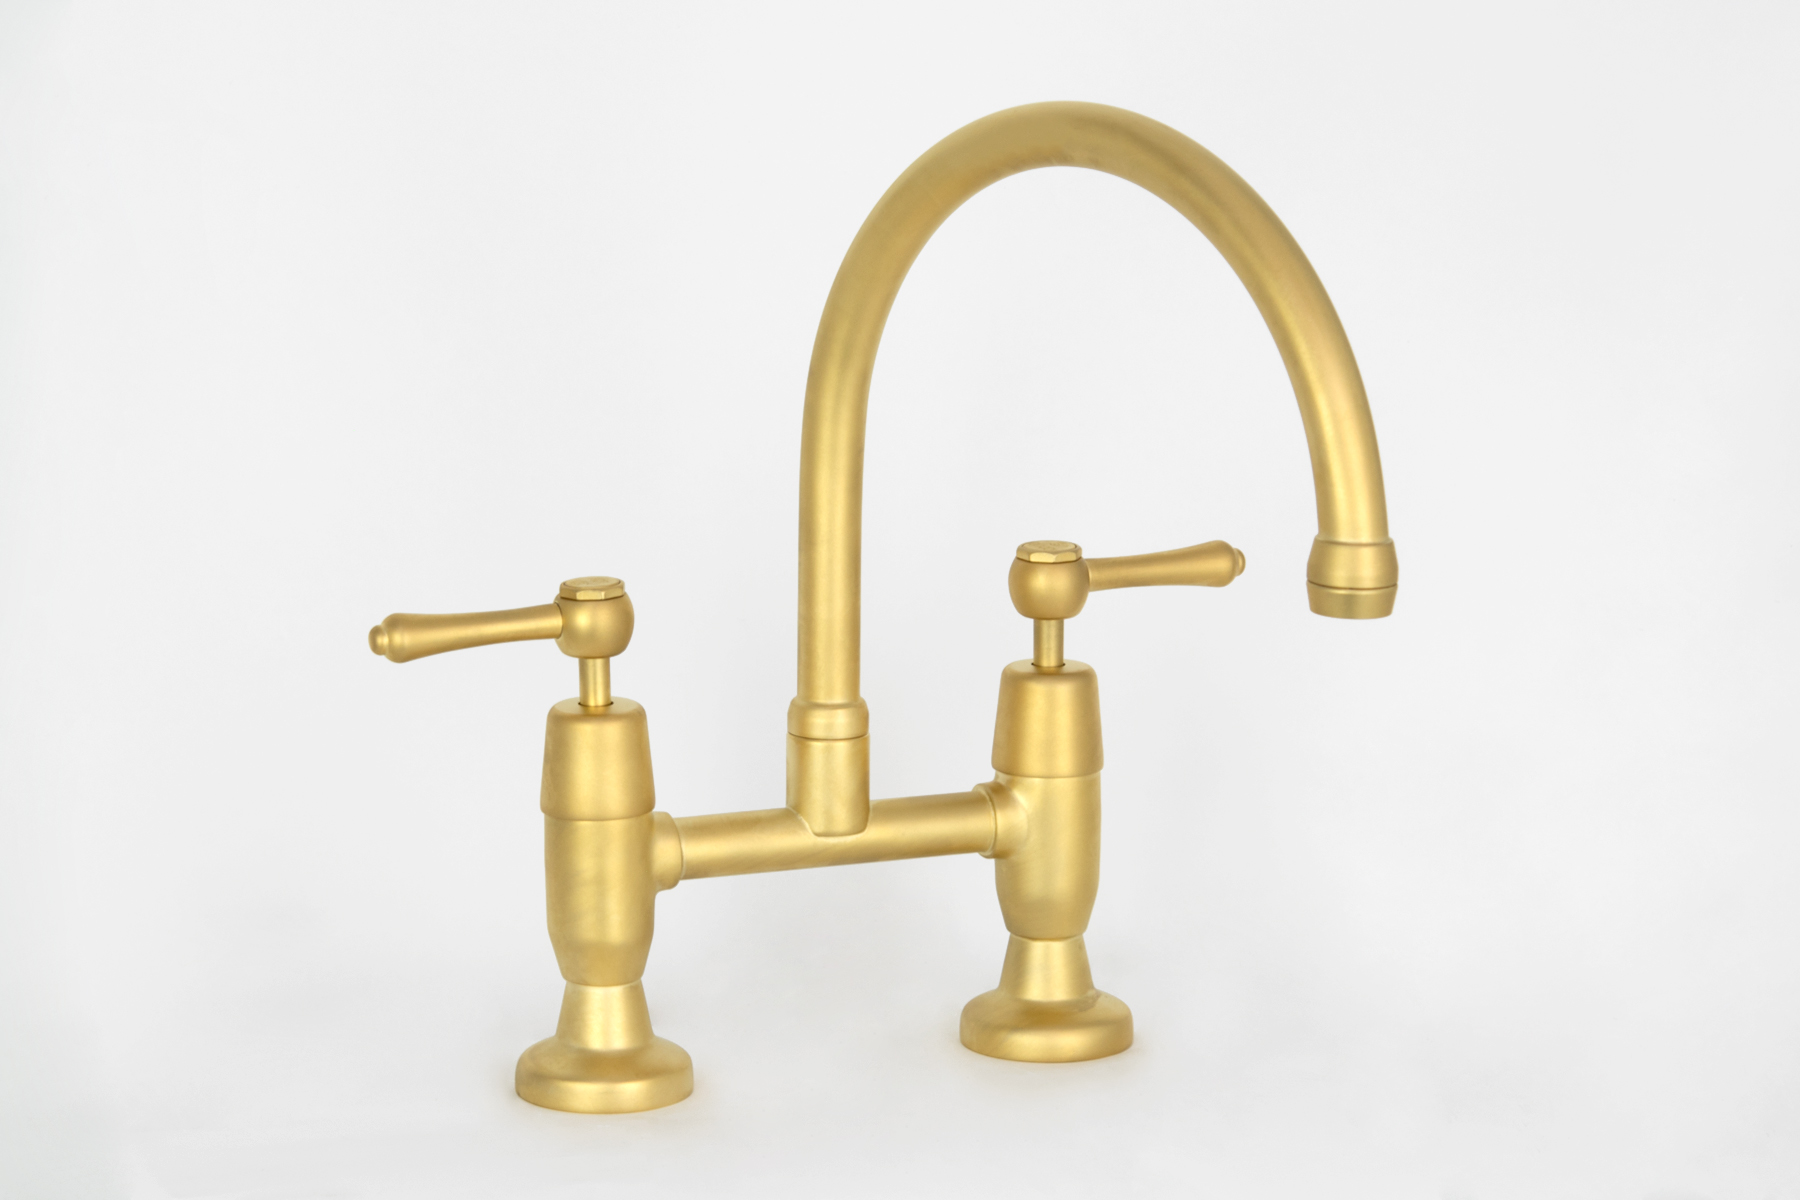 Roulette Lever Exposed Hob Sink Set with Top Taps & Swivel Gooseneck Outlet in Satin Antique Brass with Engraved Buttons